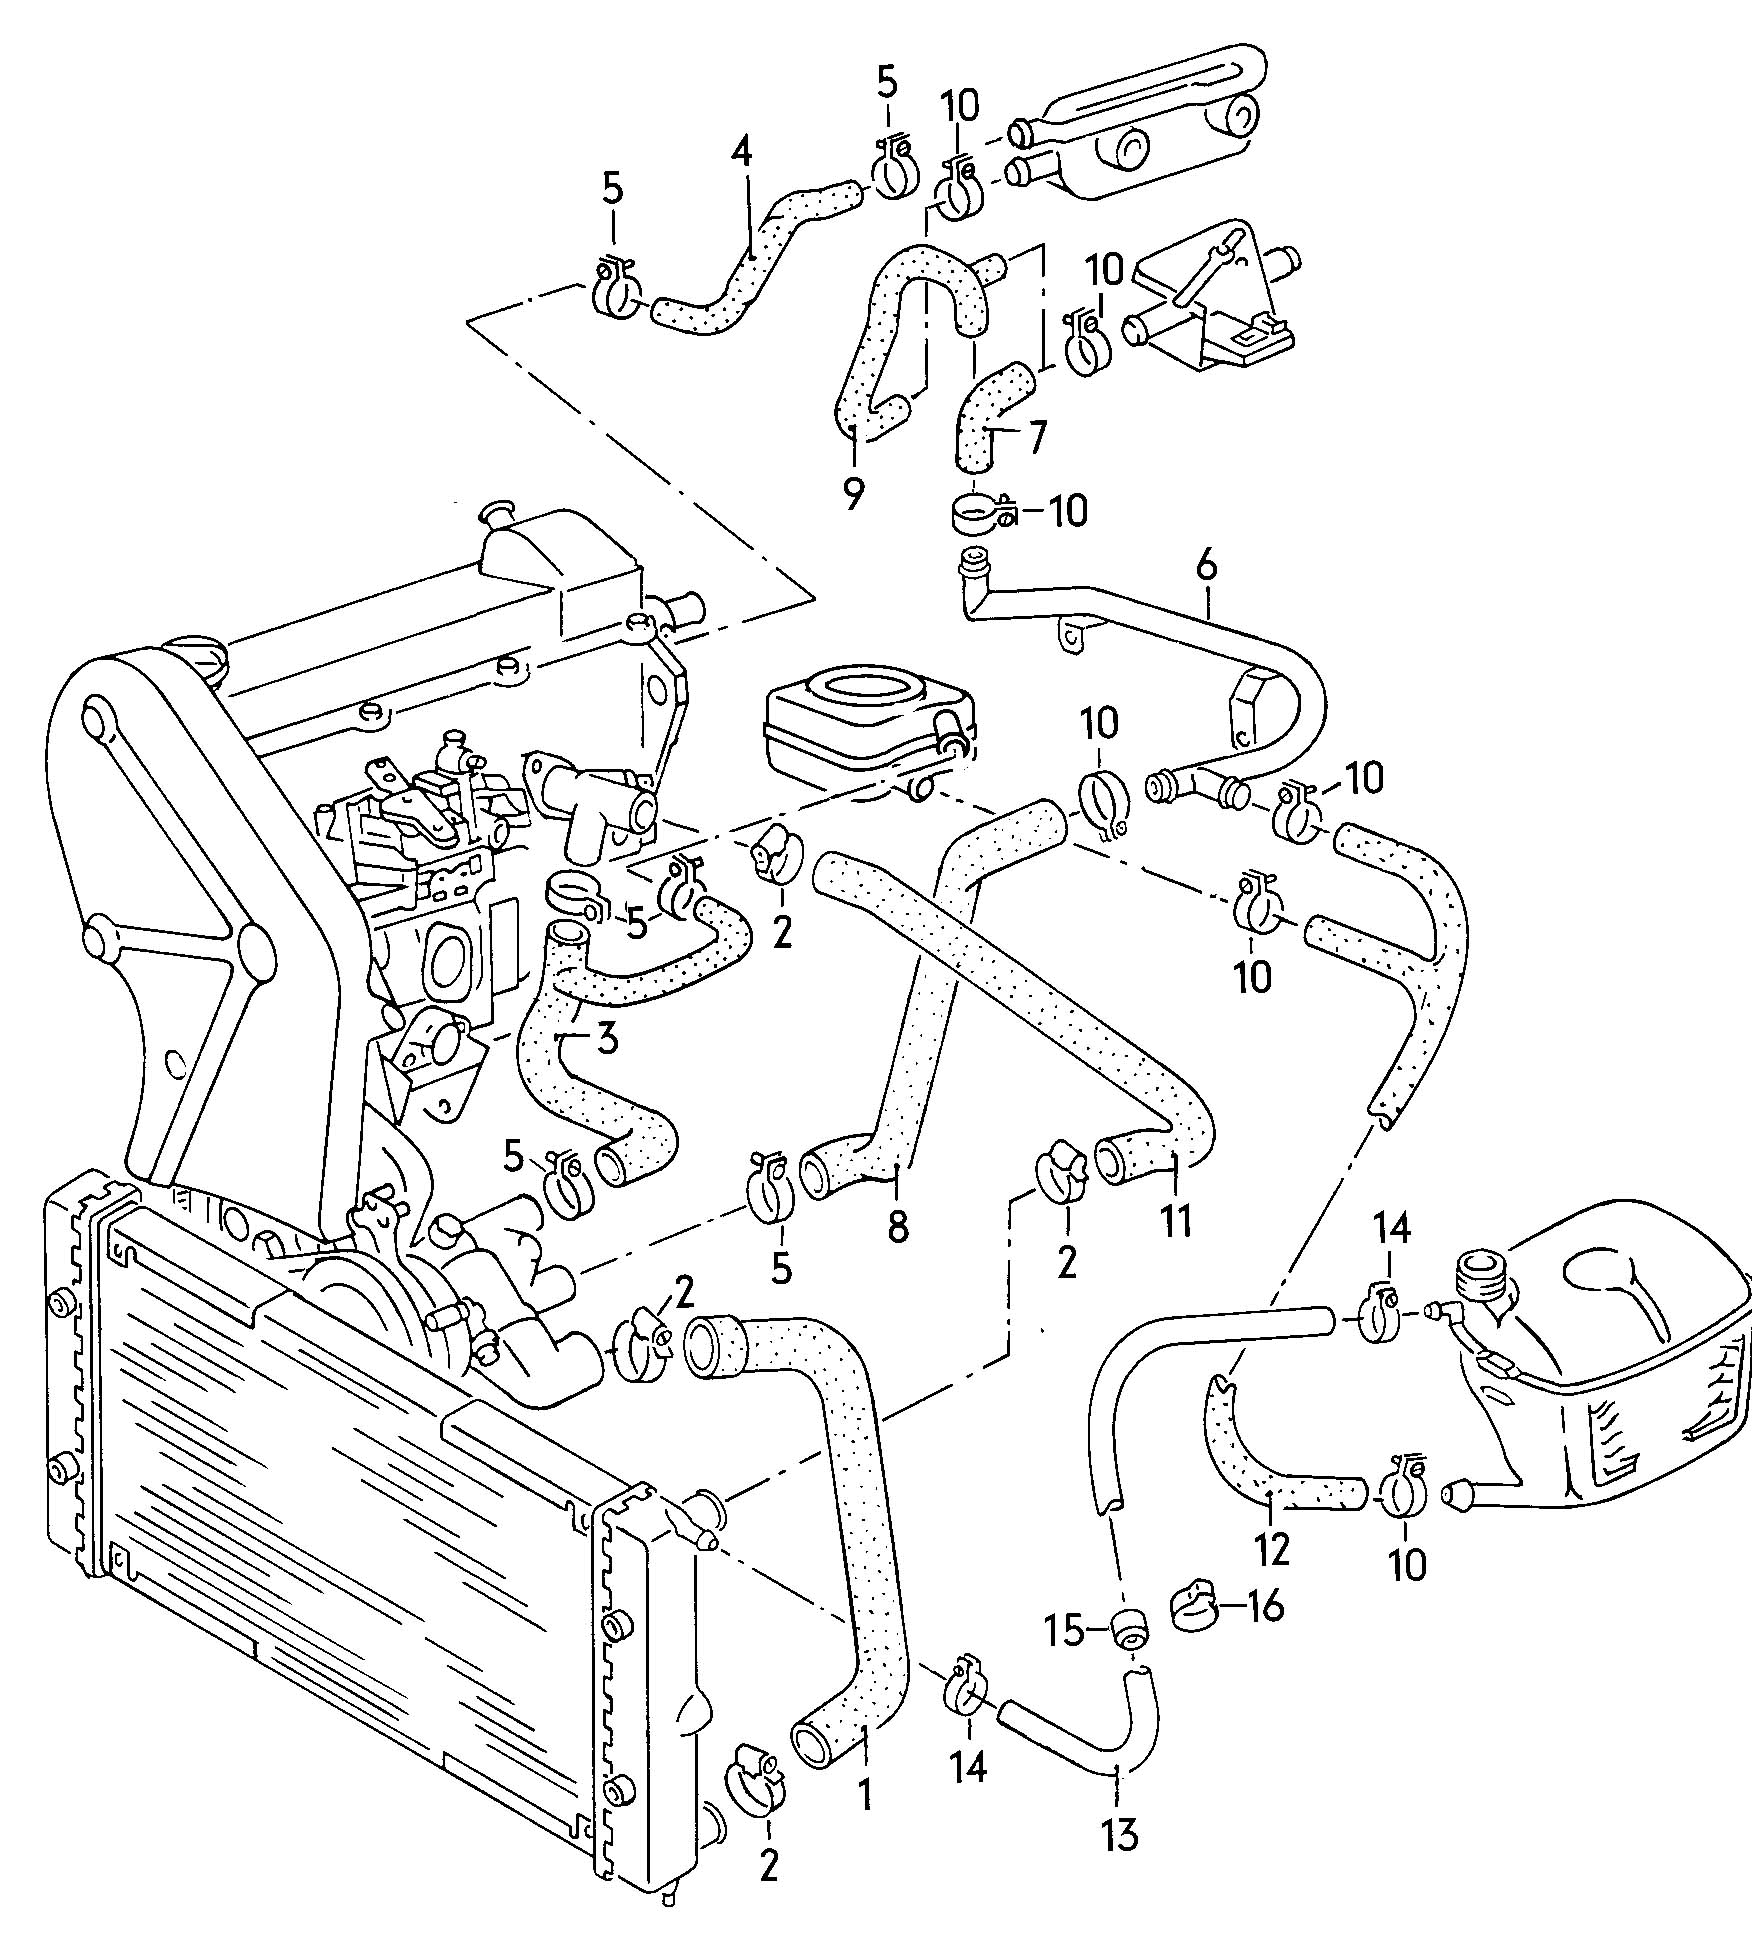 volkswagen quantum coolant hoses and water hoses pipes